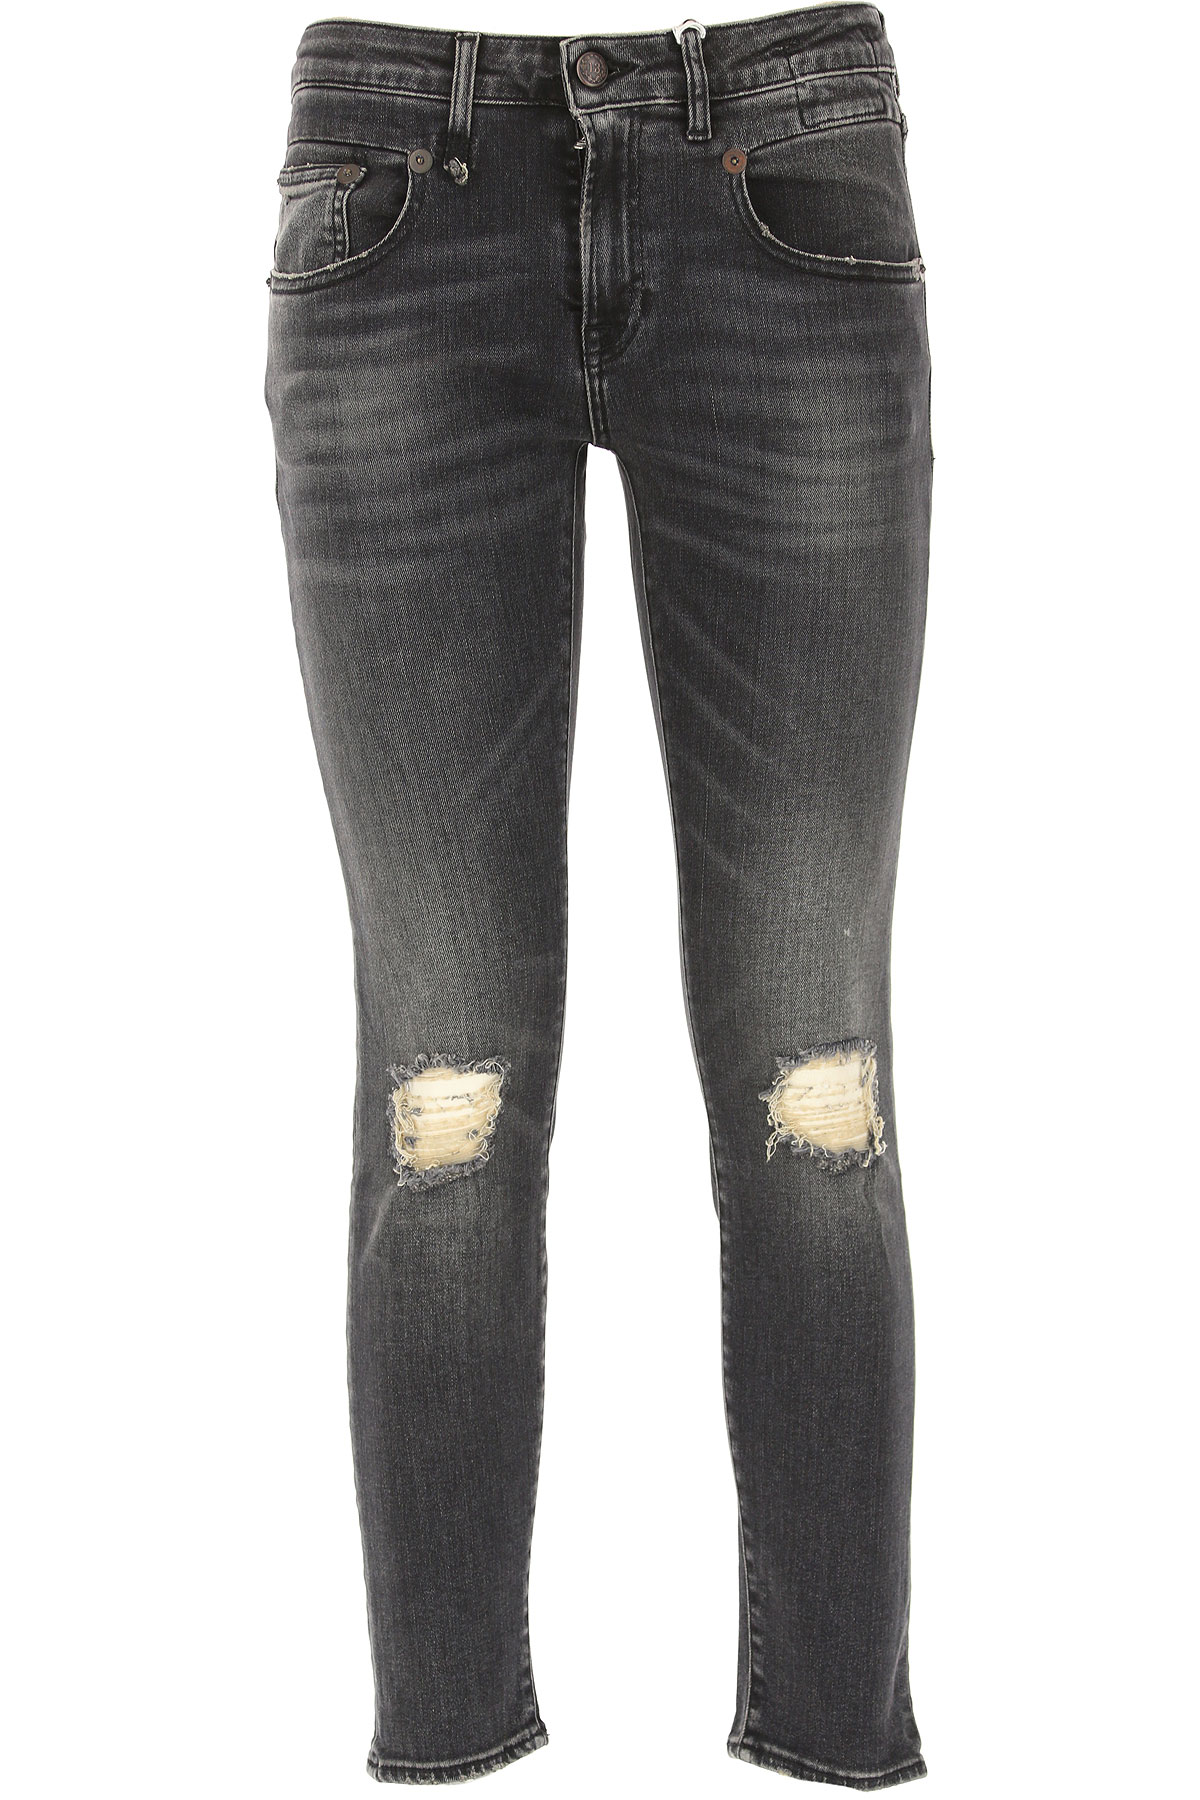 Image of R13 Jeans, Black, Cotton, 2017, 26 27 28 29